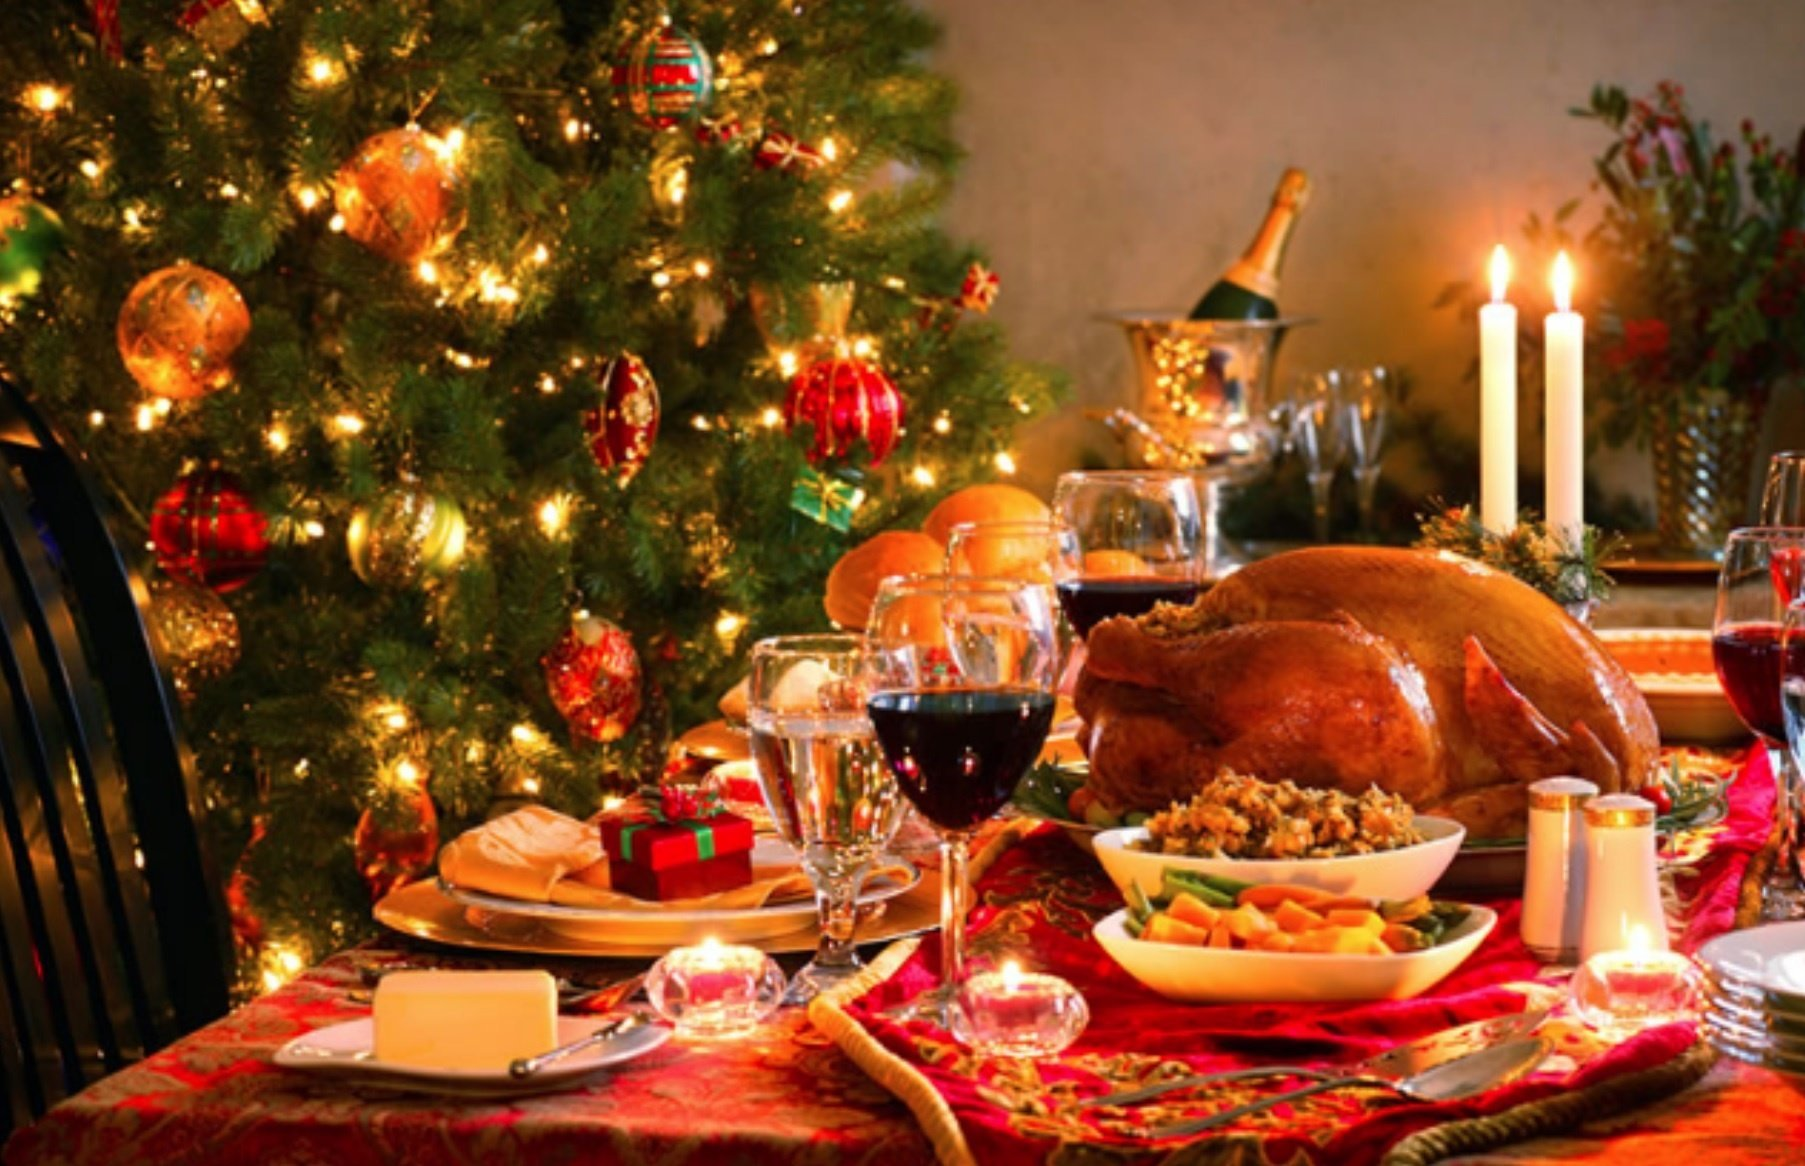 The Holidays: An Emotional Feast